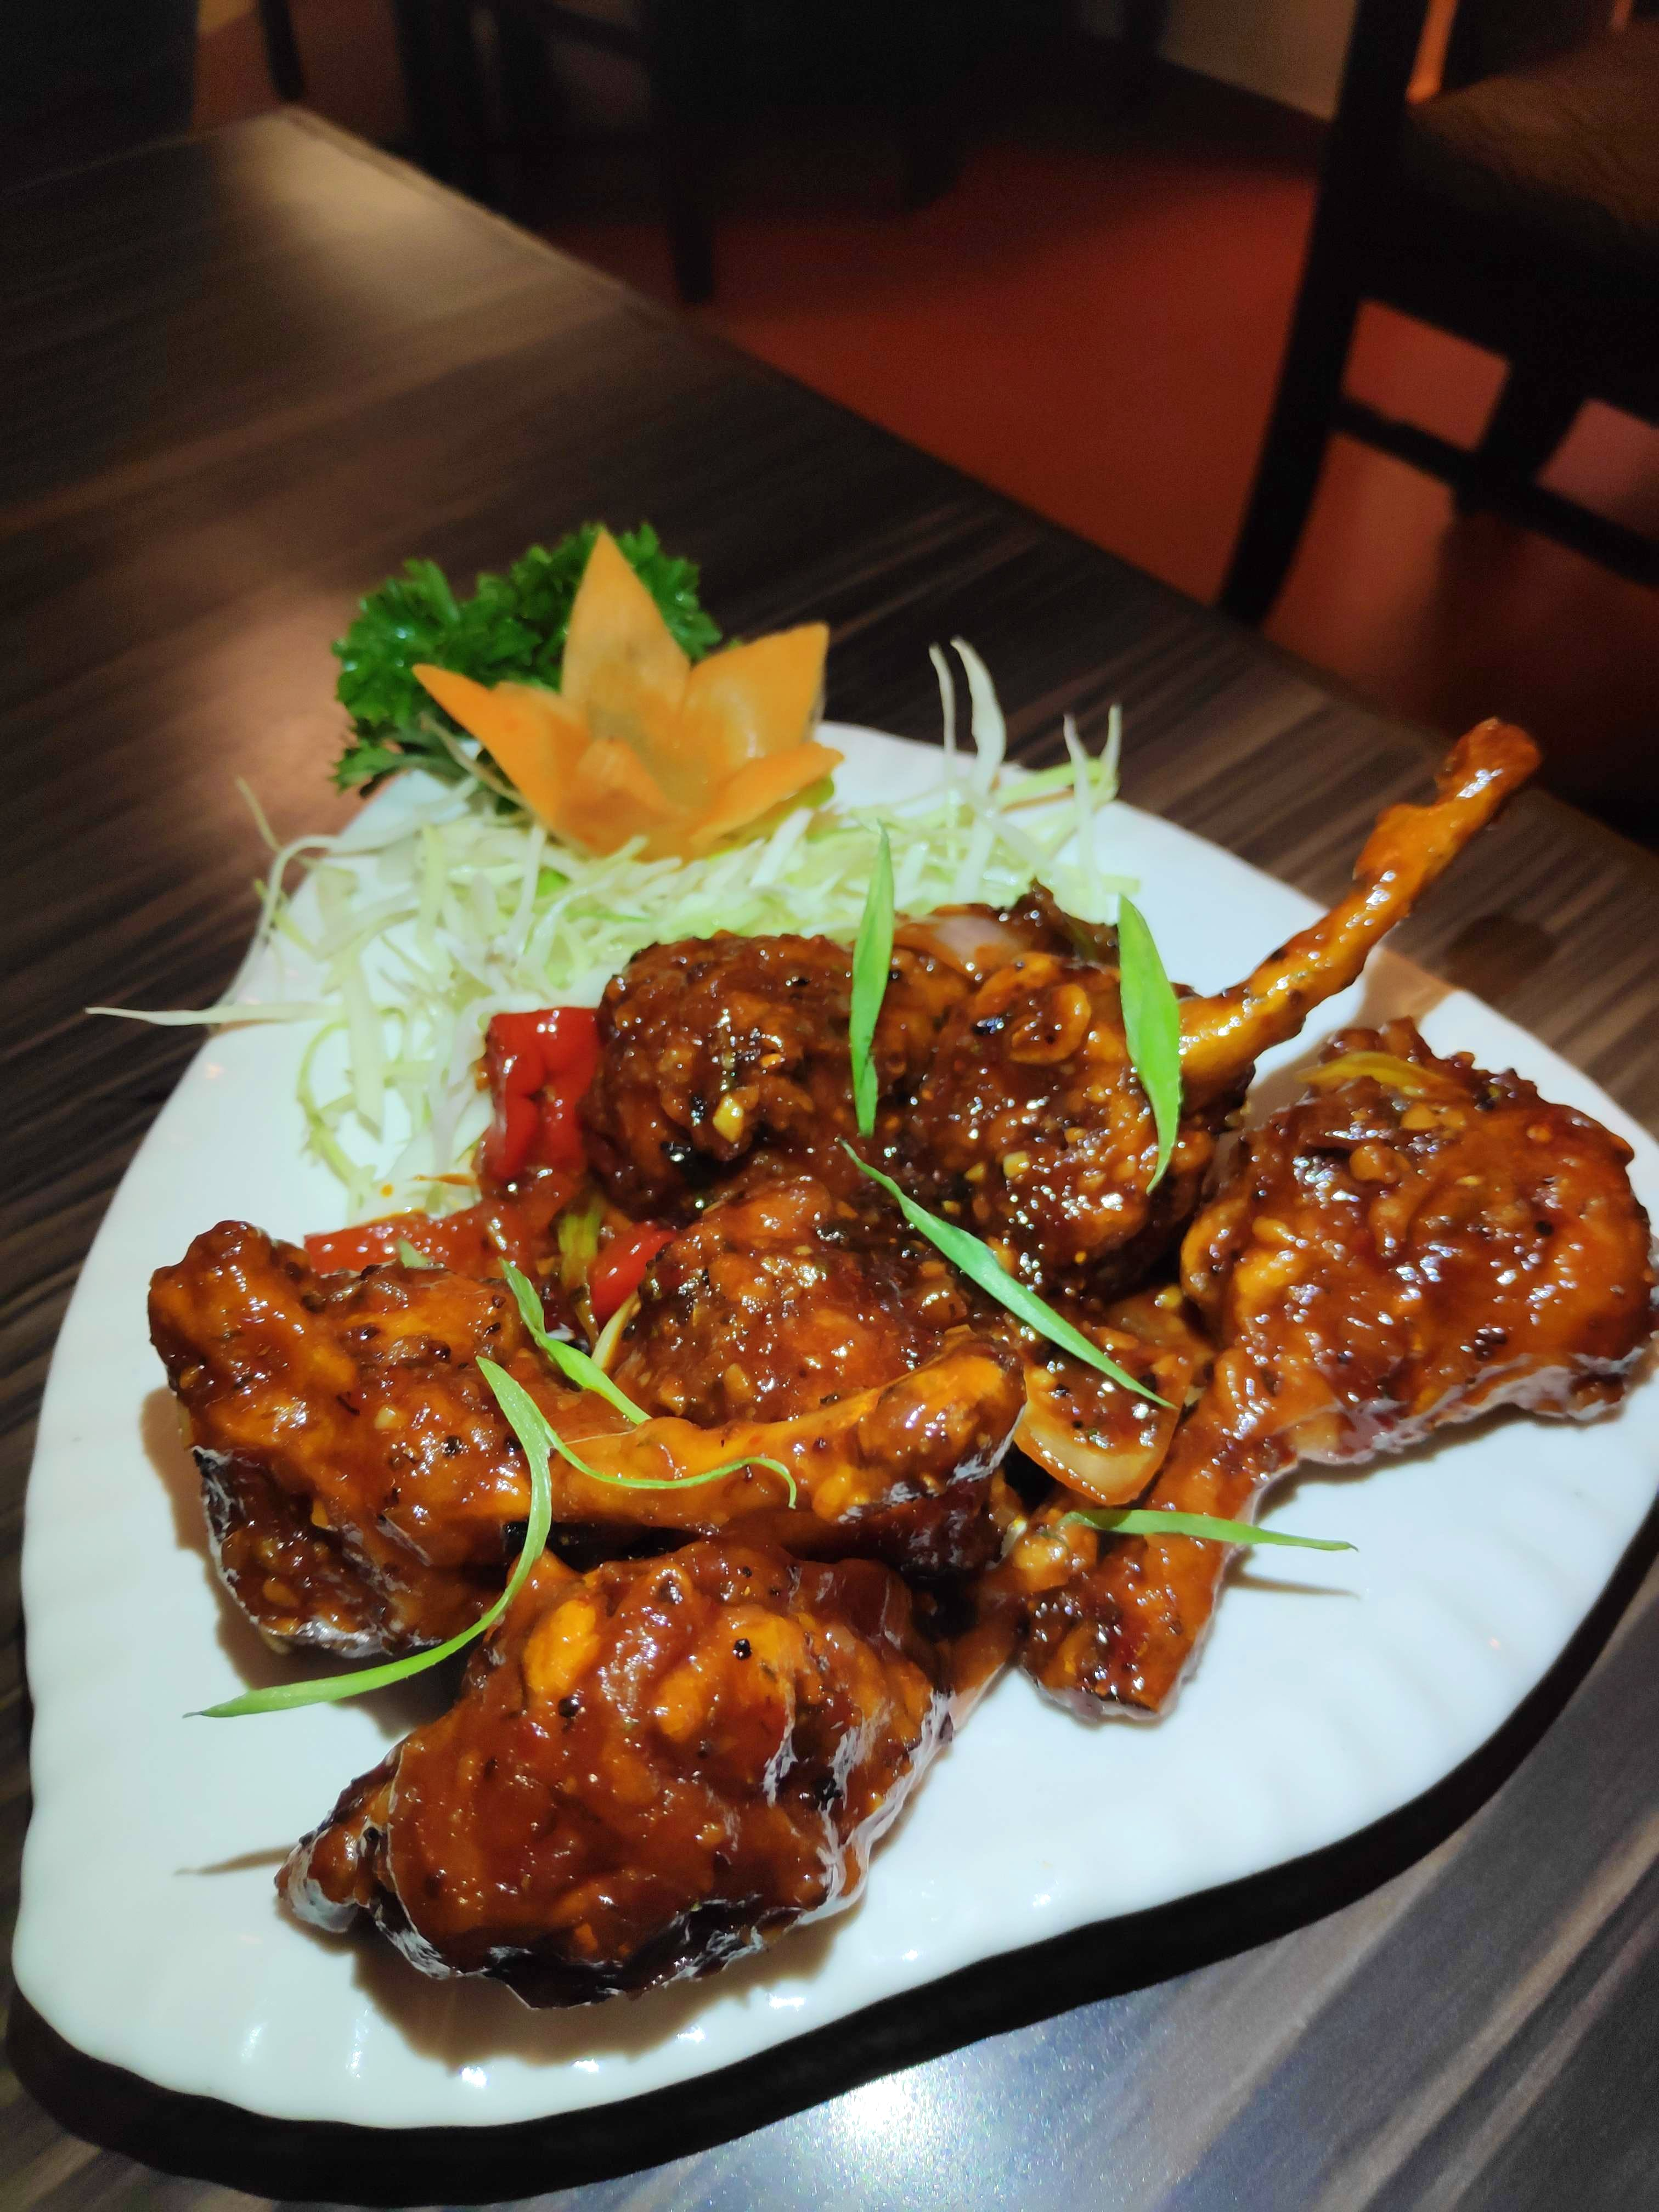 Dish,Food,Cuisine,Ingredient,Meat,Fried food,General tso's chicken,Fried chicken,Produce,Recipe